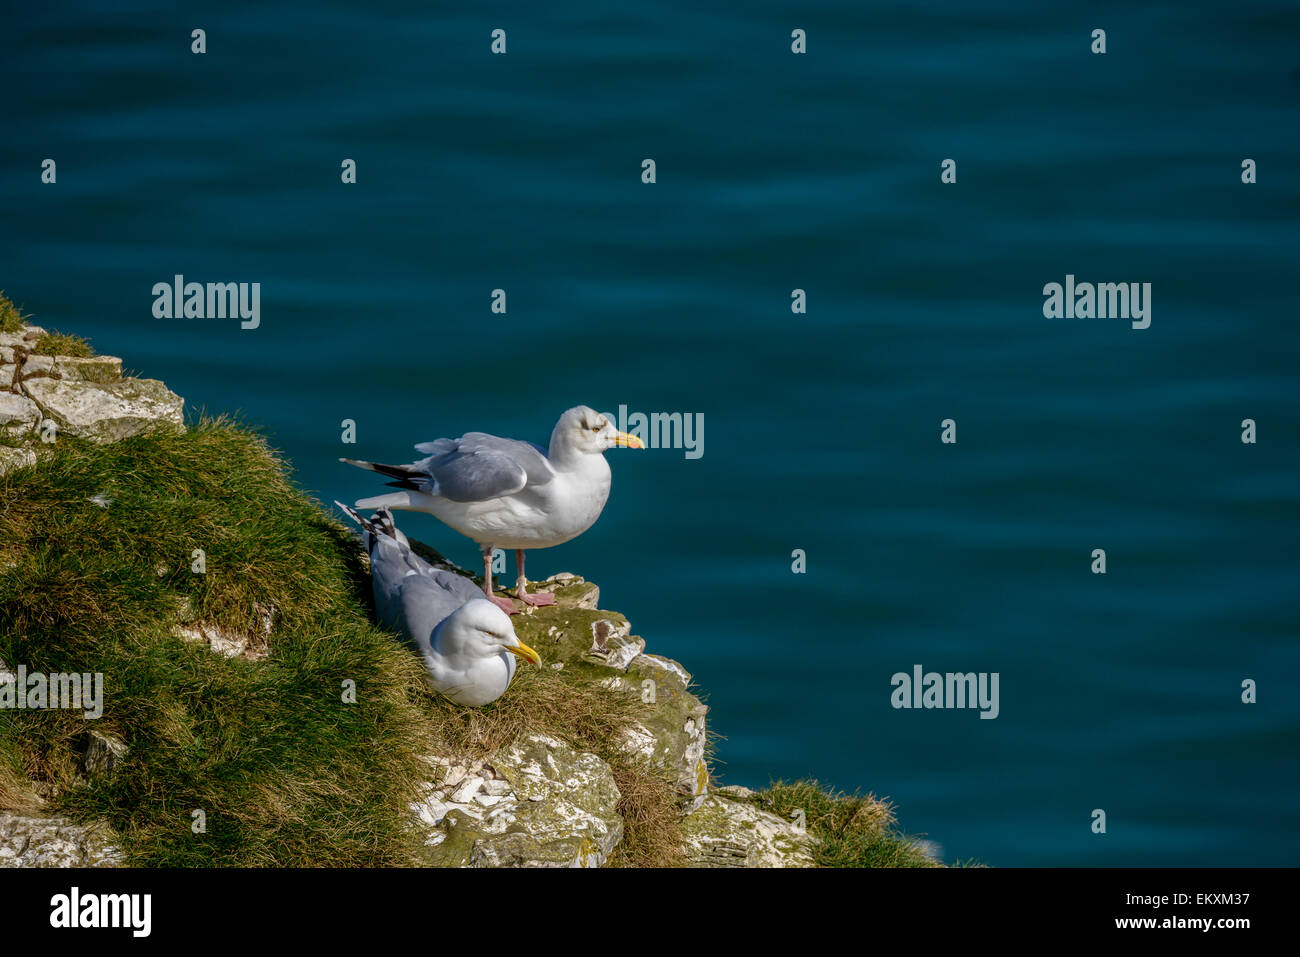 A pair of European herring gulls on a grassy cliff with blue sea ocean behind. Horizontal format with copyspace. - Stock Image